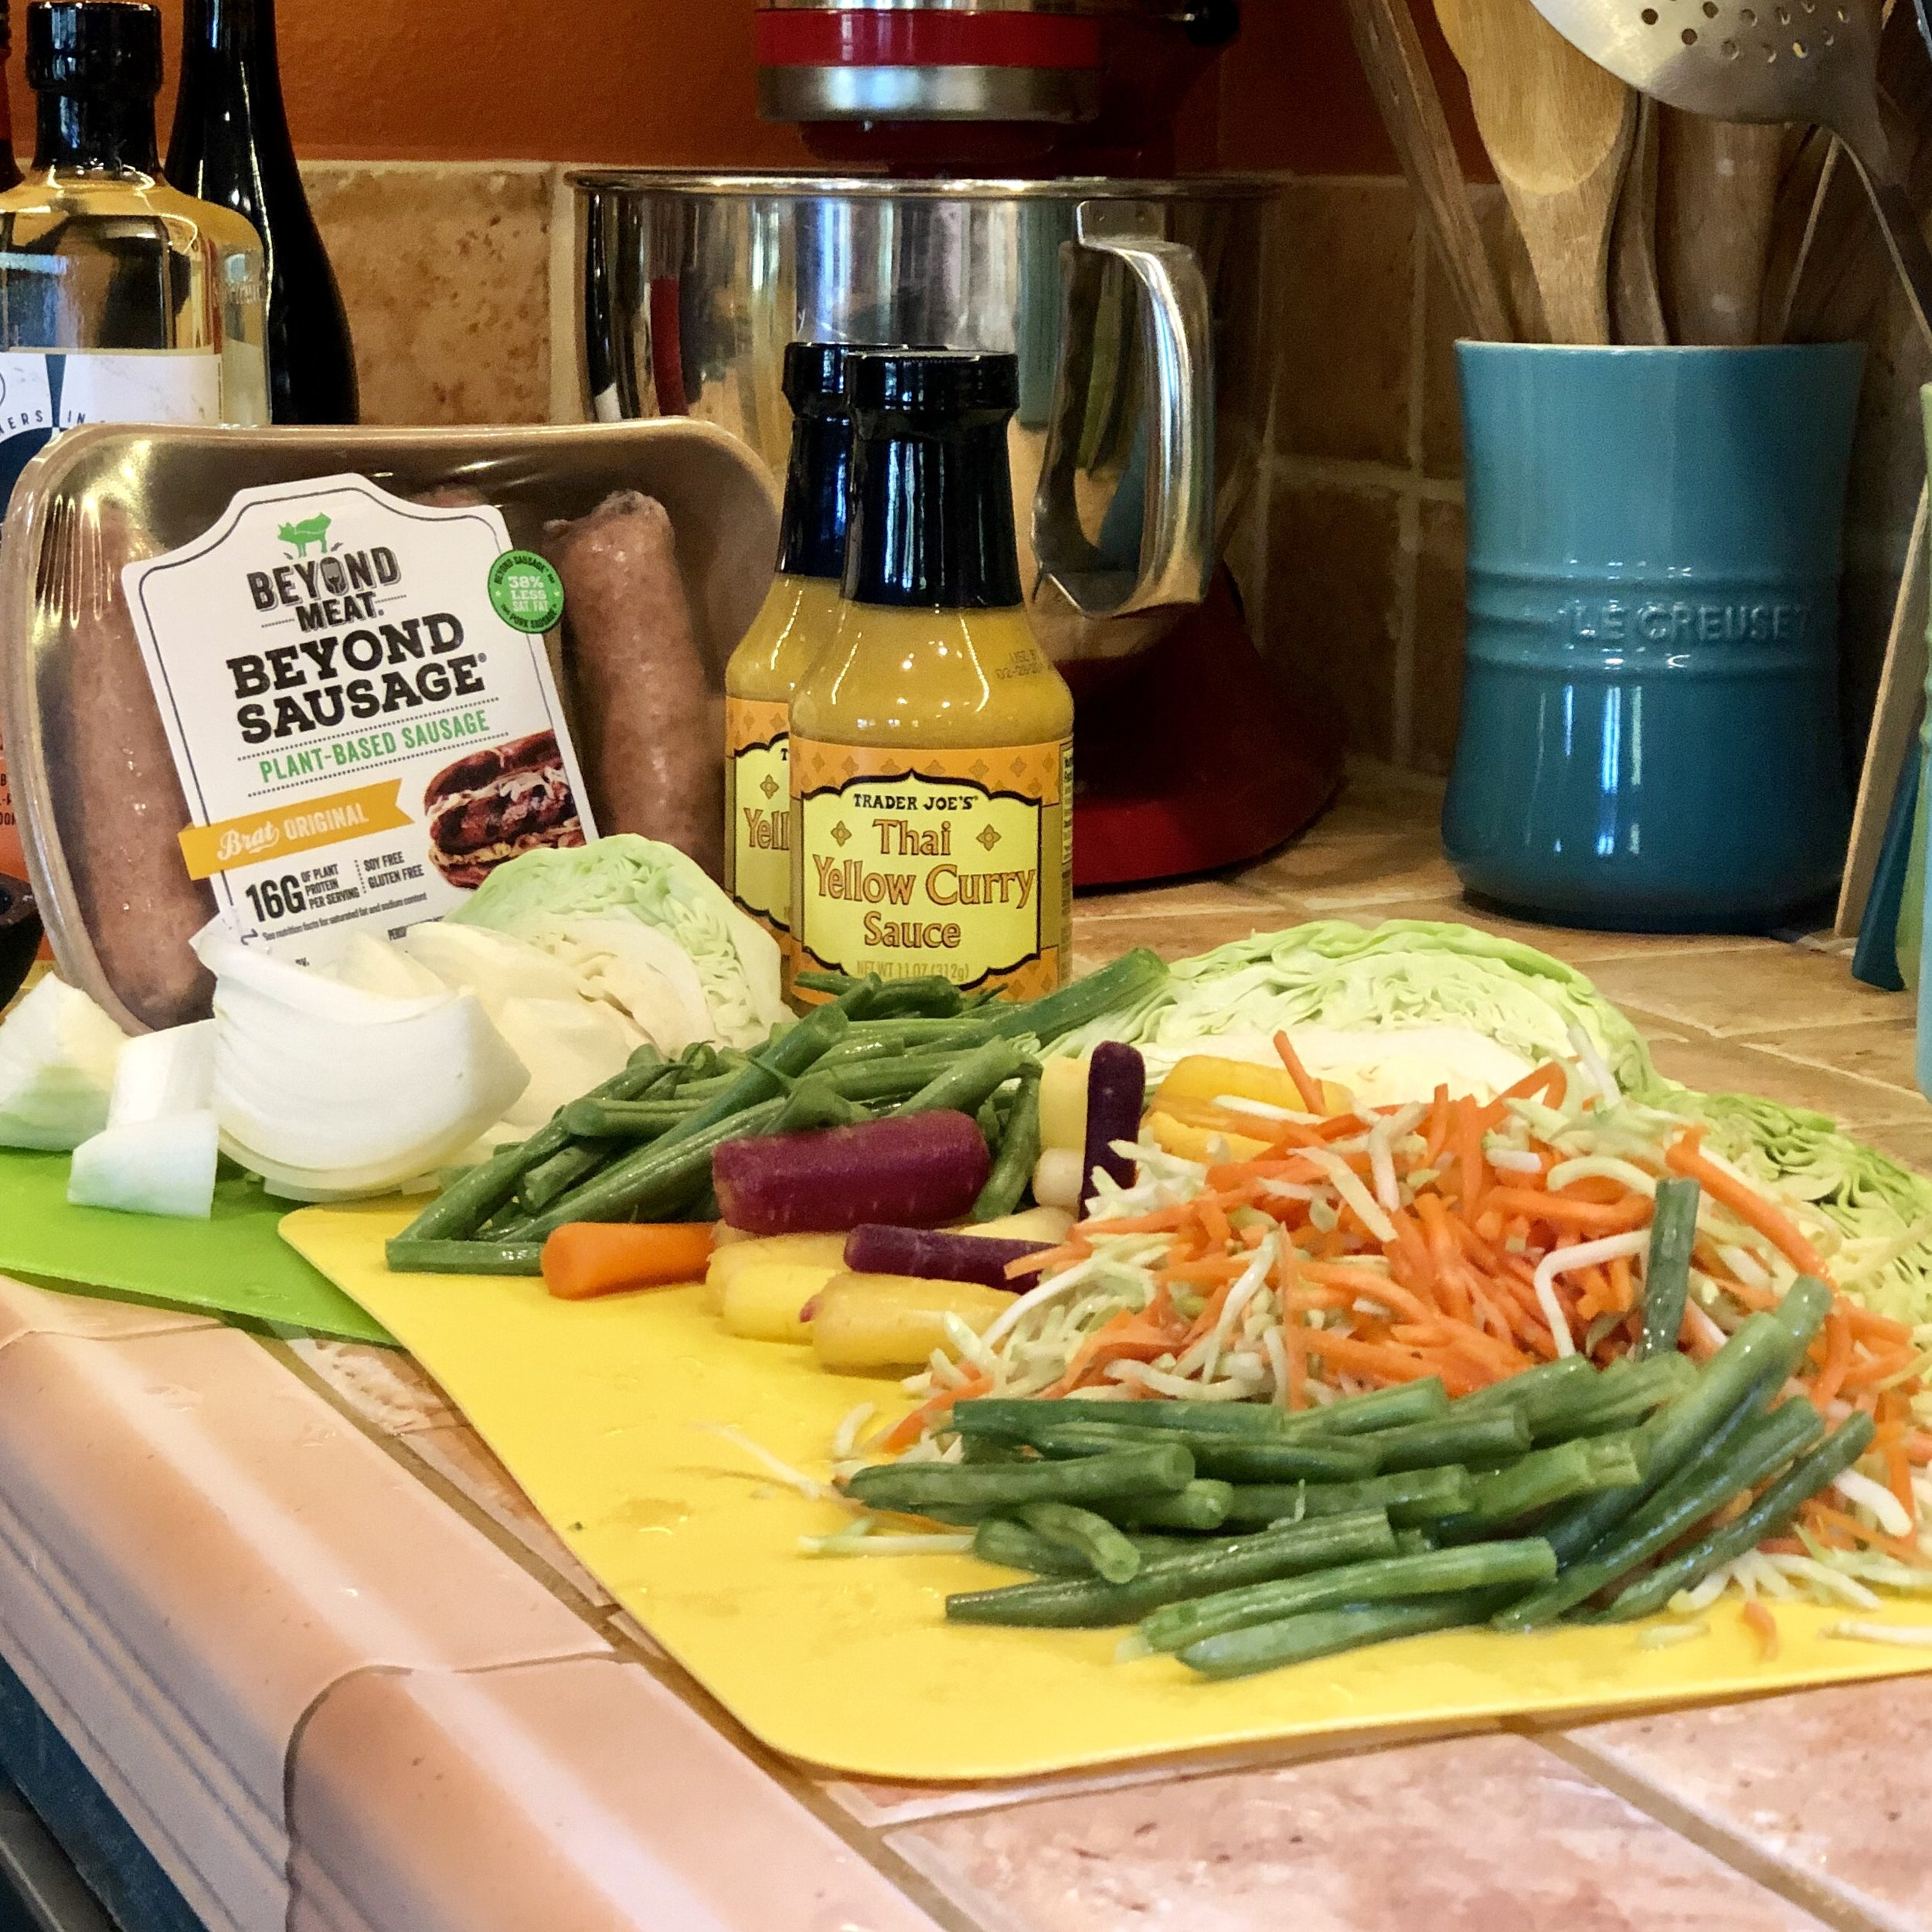 Beyond Sausage, TJ's Yellow Curry Sauce, sliced onion, green beans, multi colored carrots, broccoli slaw, cabbage.